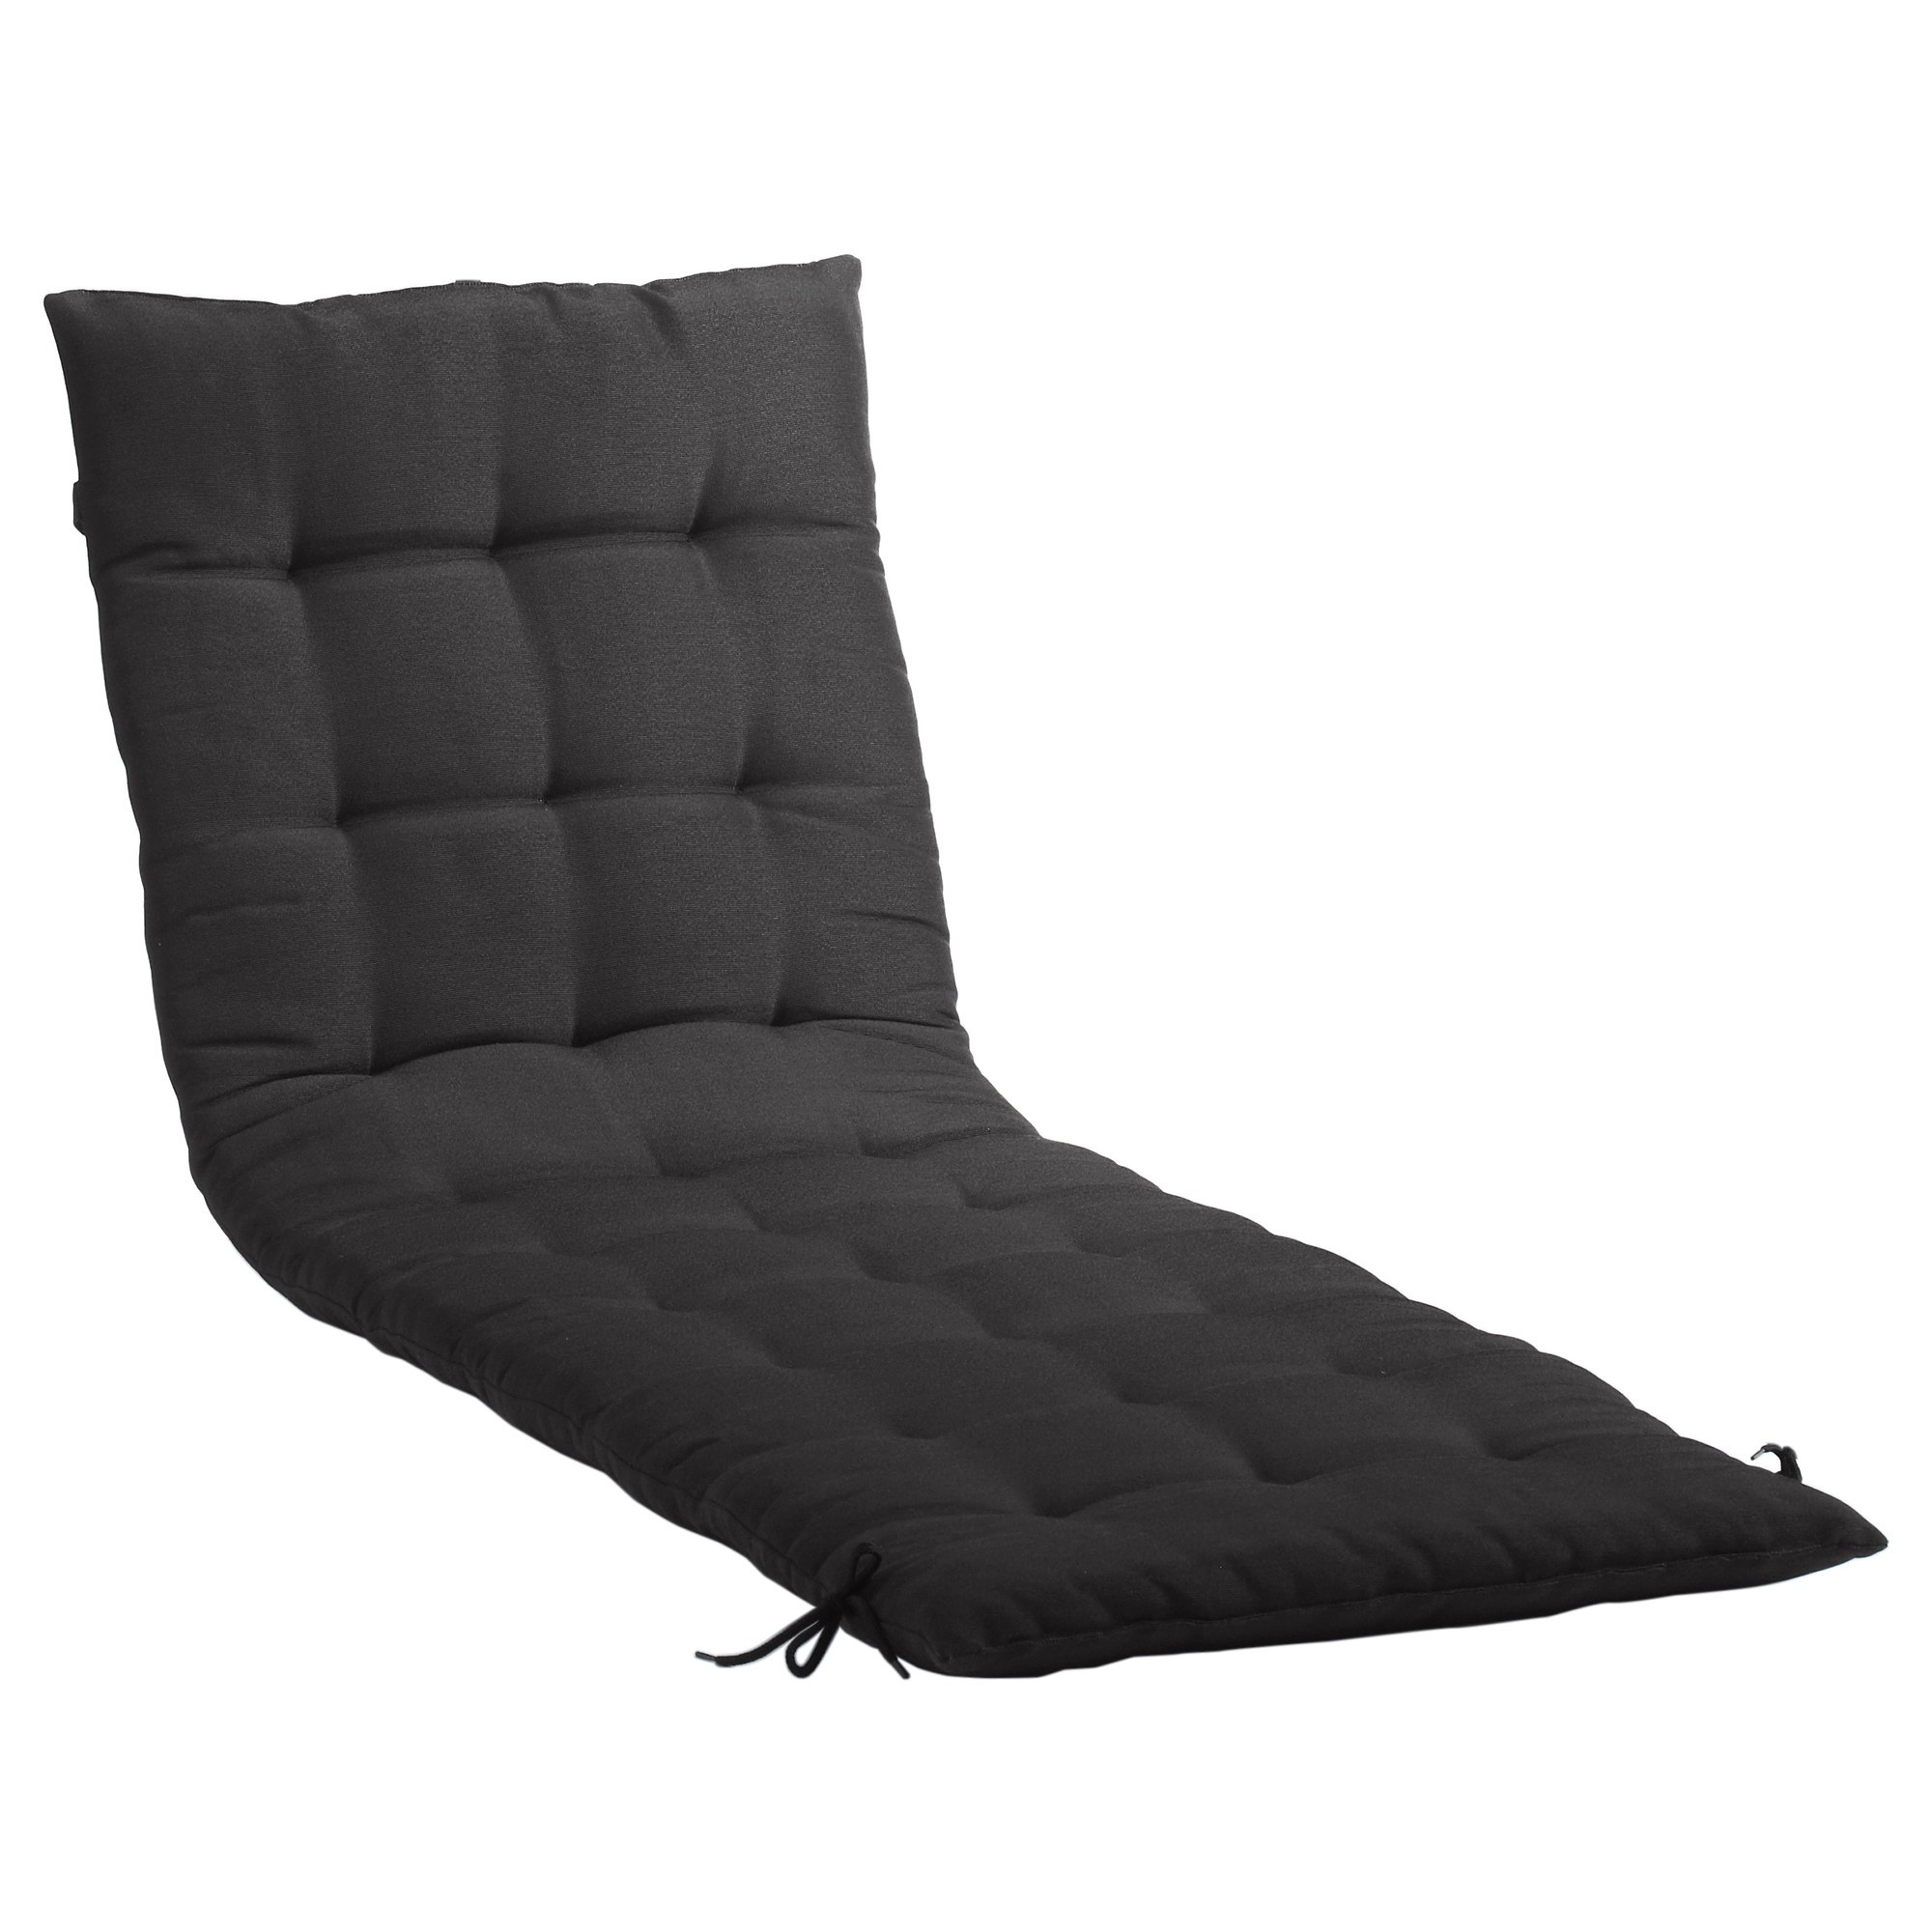 ikea coussin de chaise free awesome ikea galette chaise metz douche ahurissant with ikea. Black Bedroom Furniture Sets. Home Design Ideas